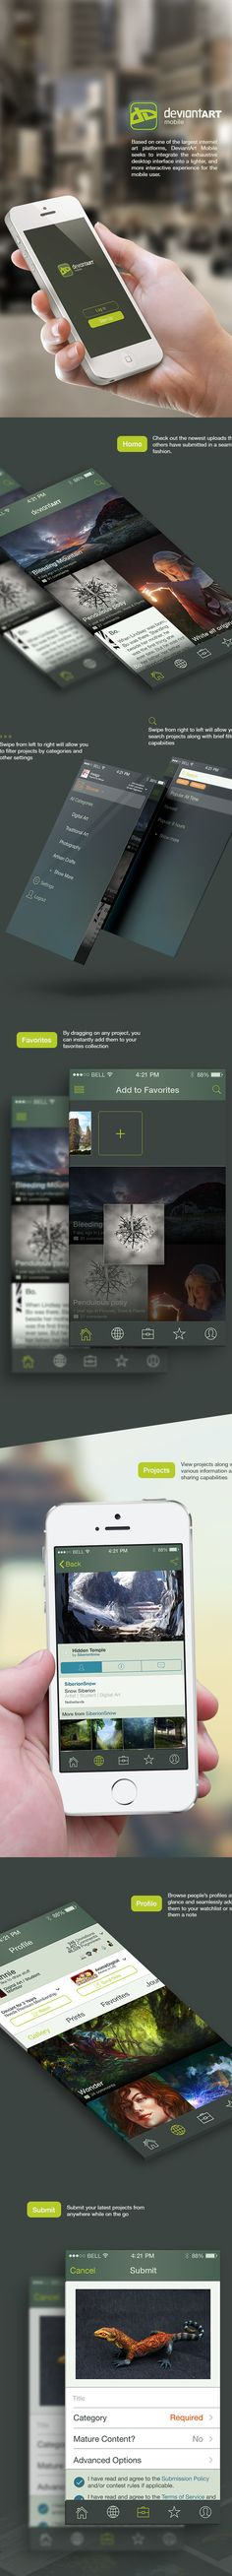 Mobile App Design Inspiration – DeviantArt Mobile